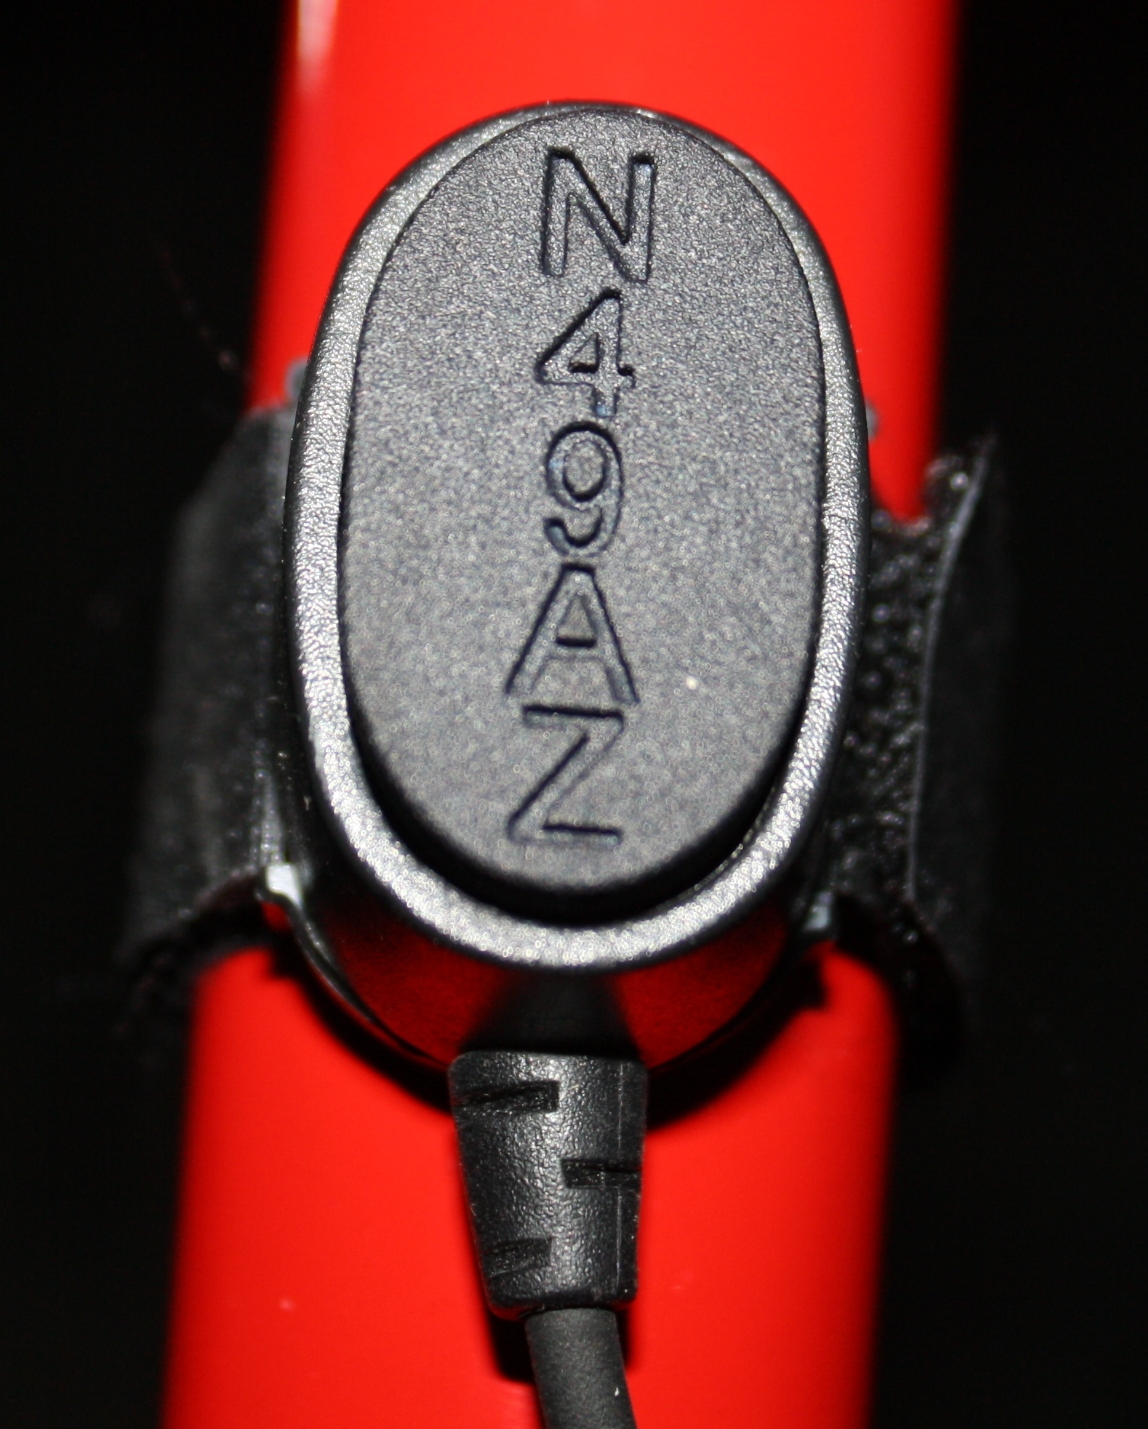 I designed a cap for my Icom style Push-To-Talk switch, personalized it with my trike's N-numb